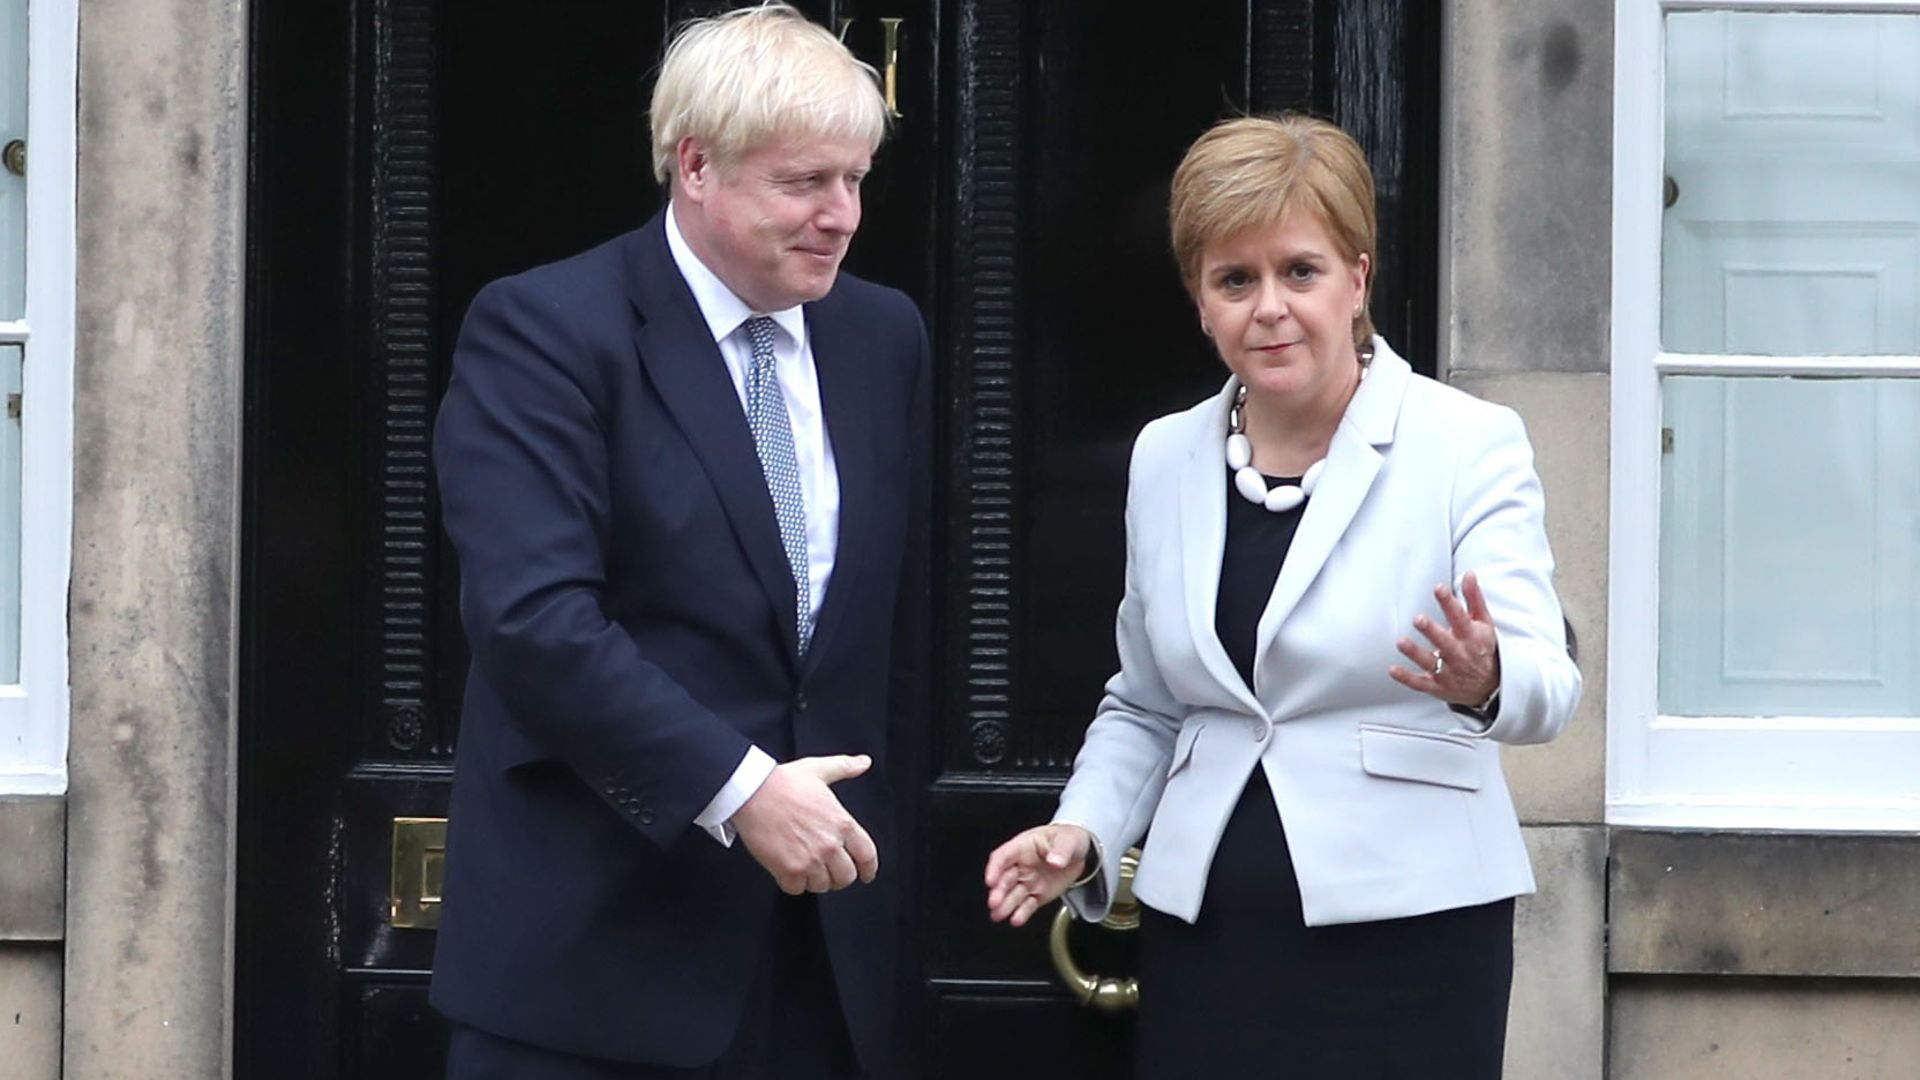 Scotland's first minister Nicola Sturgeon welcomes prime minister Boris Johnson outside Bute House in Edinburgh ahead of their meeting - Credit: PA